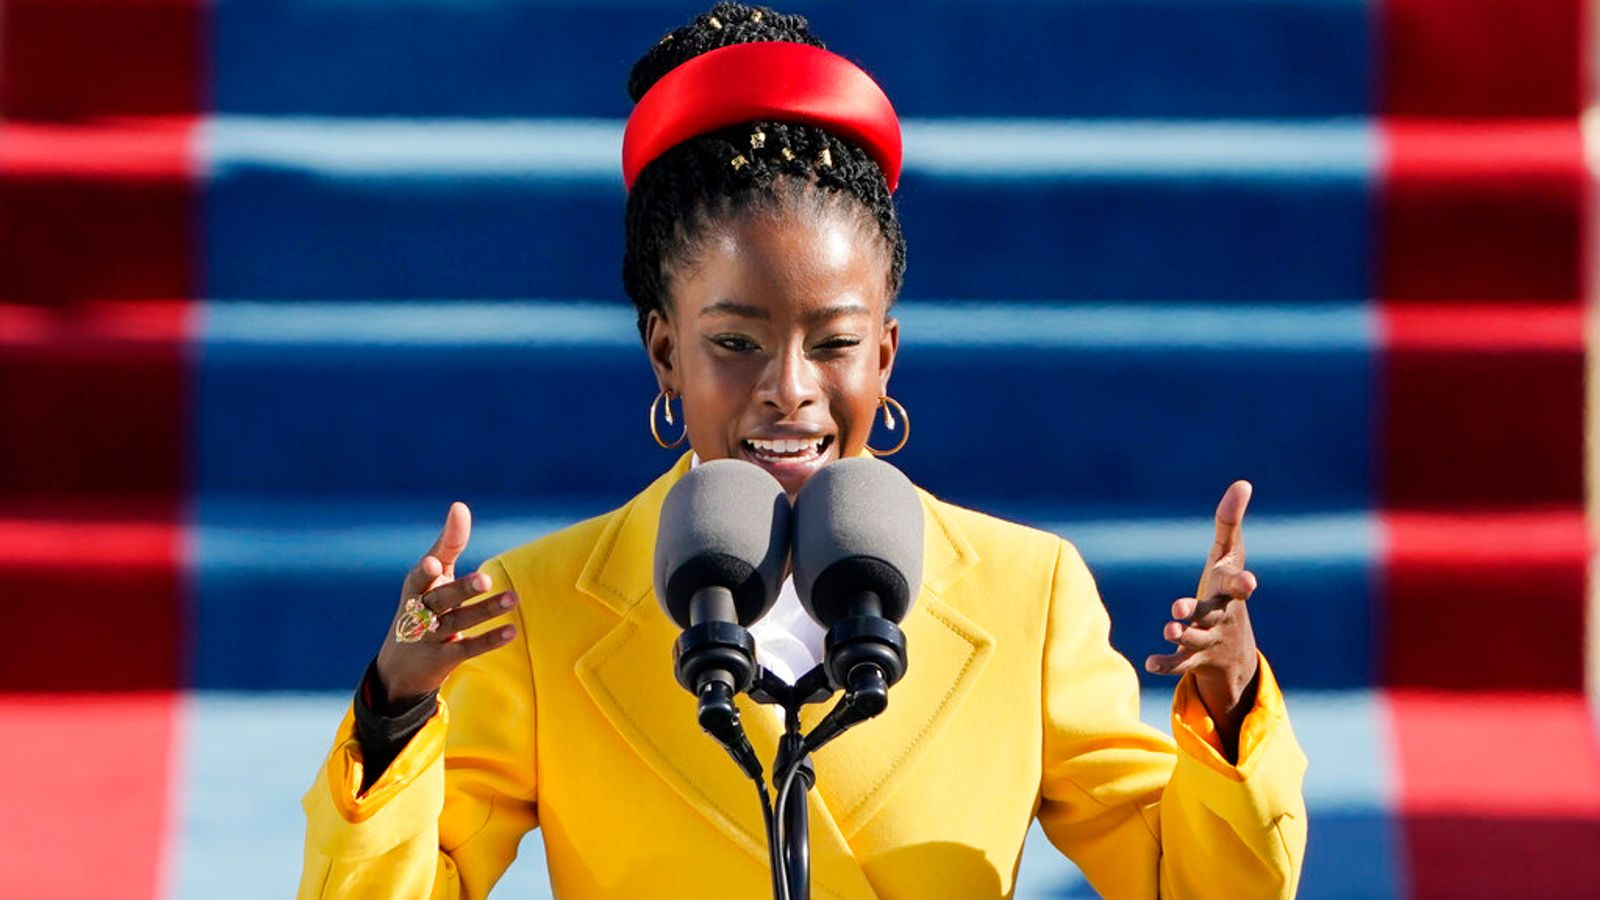 Who is Amanda Gorman - the young poet who captivated America during Biden's inauguration?